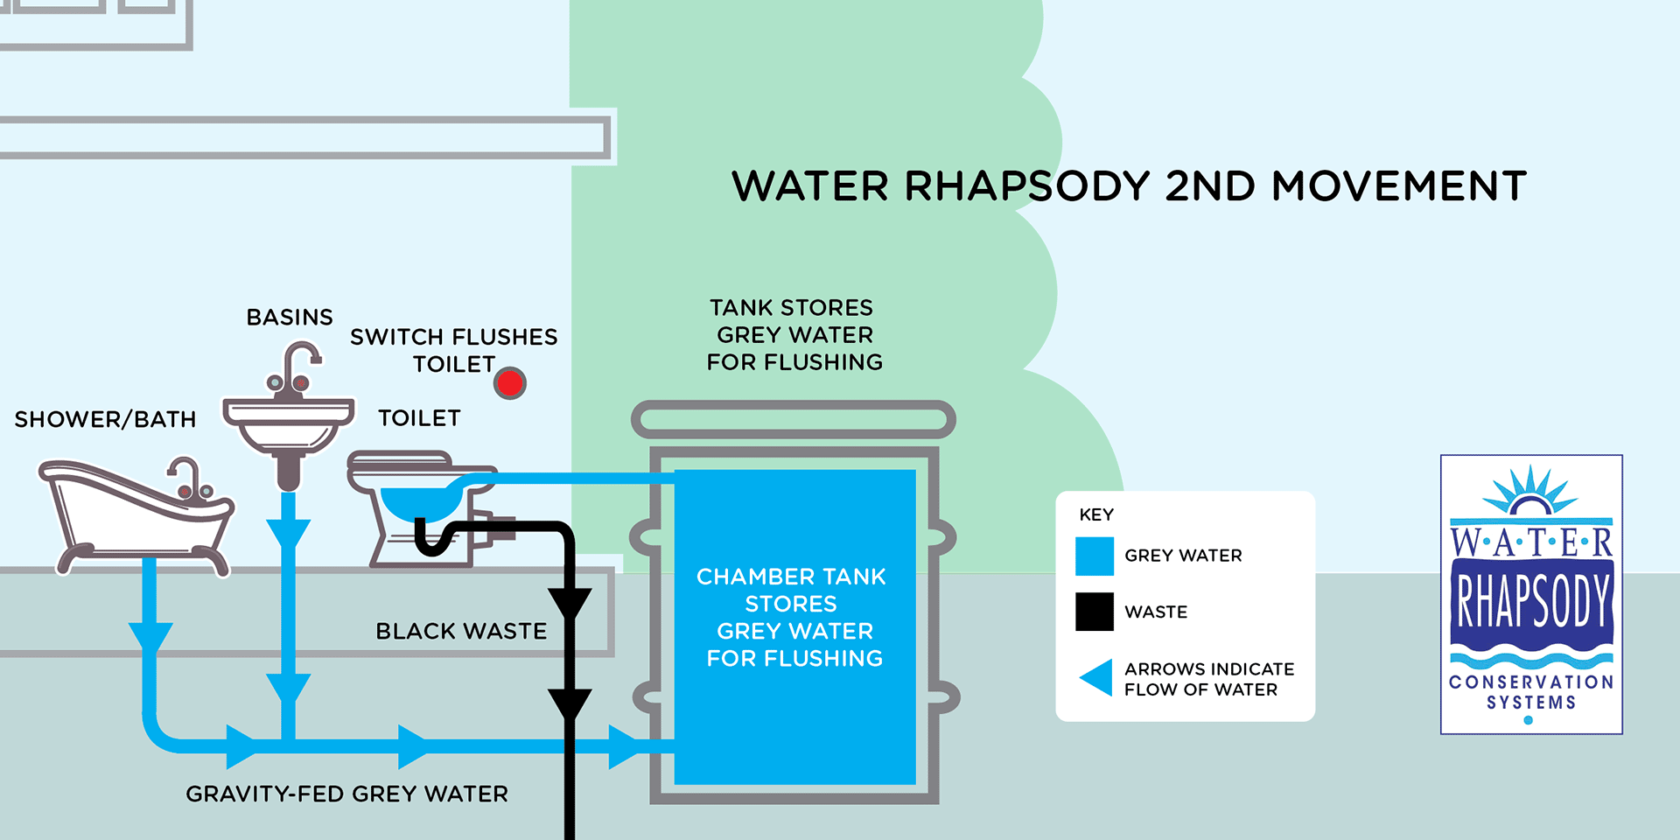 WATER-RHAPSODY_ILLUSTRATIONS-02